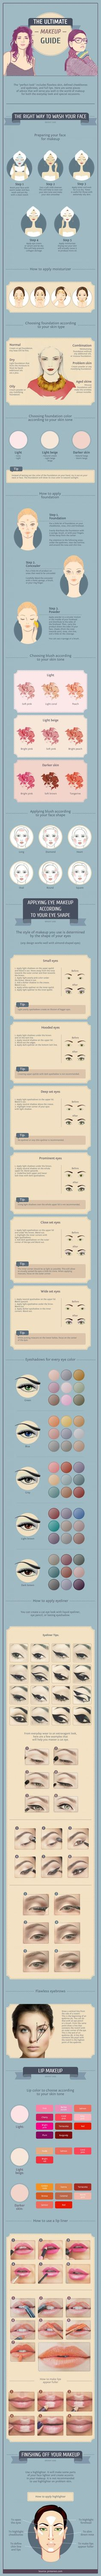 Step-by-step instructions to help you attain an absolutely flawless look. Makeup infograph eye liner makeup